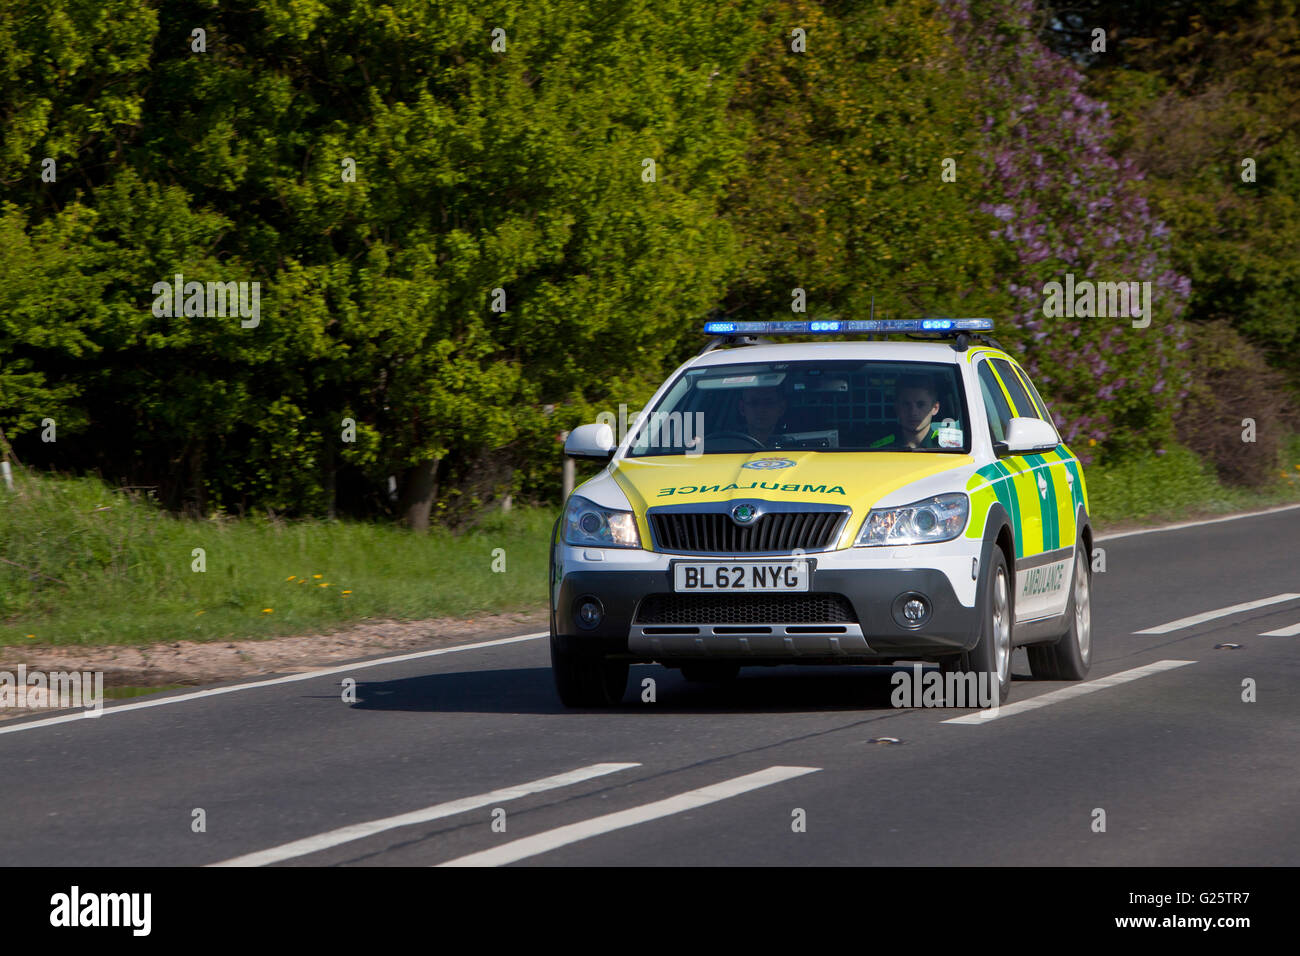 Emergency paramedic vehicle responding to call on A149 road in Norfolk. - Stock Image